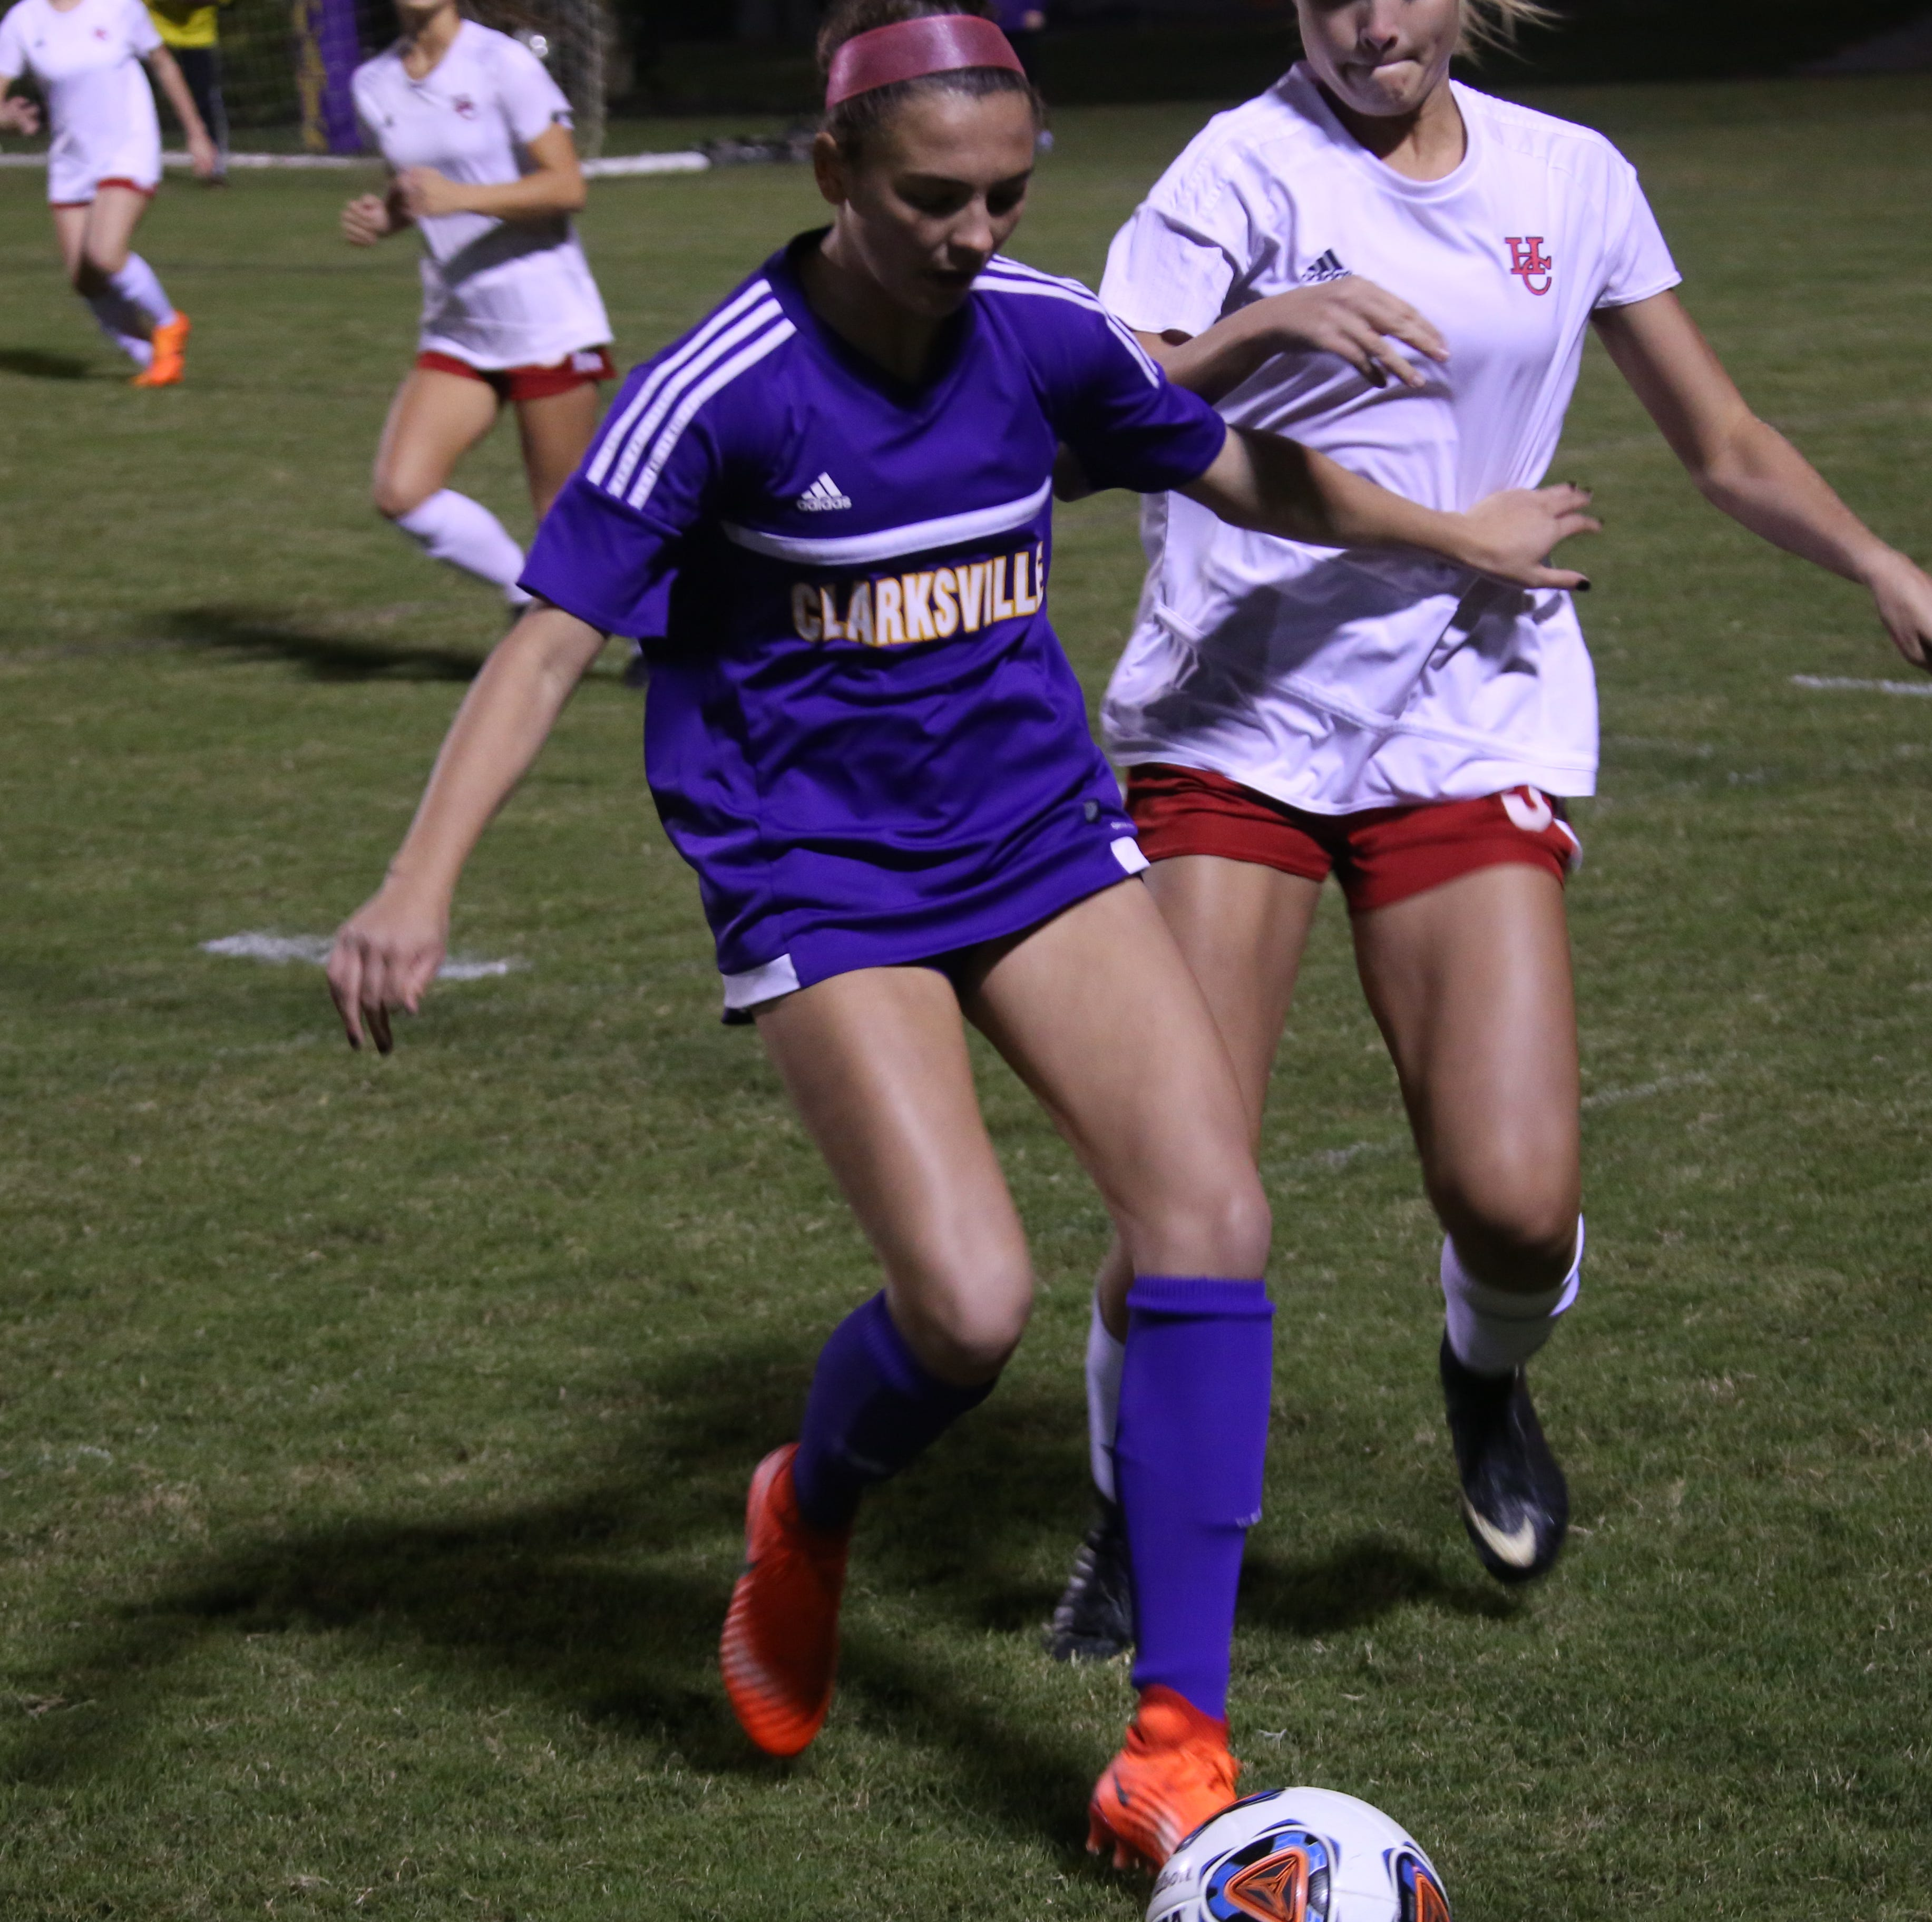 A Clarksville High player chases down the ball against Henry County during their Region 7-AAA championship game Wednesday night in which CHS beat the Lady Patriots, 8-2.